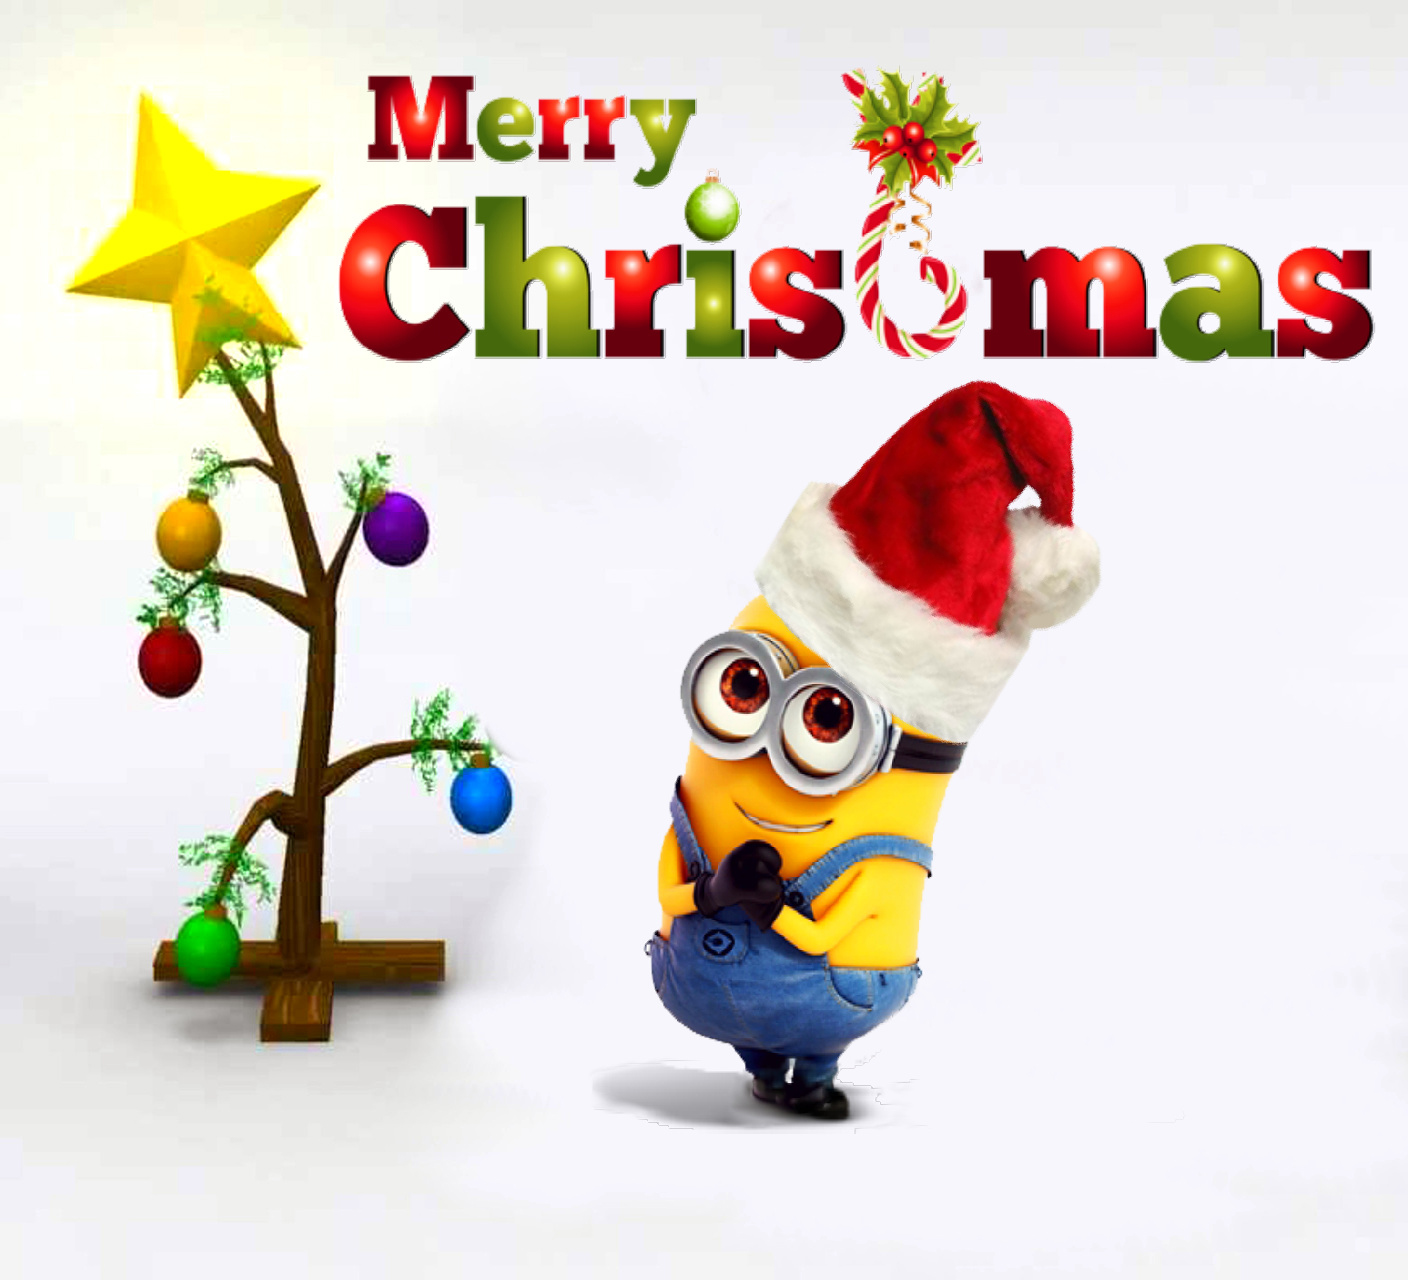 merry christmas wishes messages images wallpapers greetings quotes